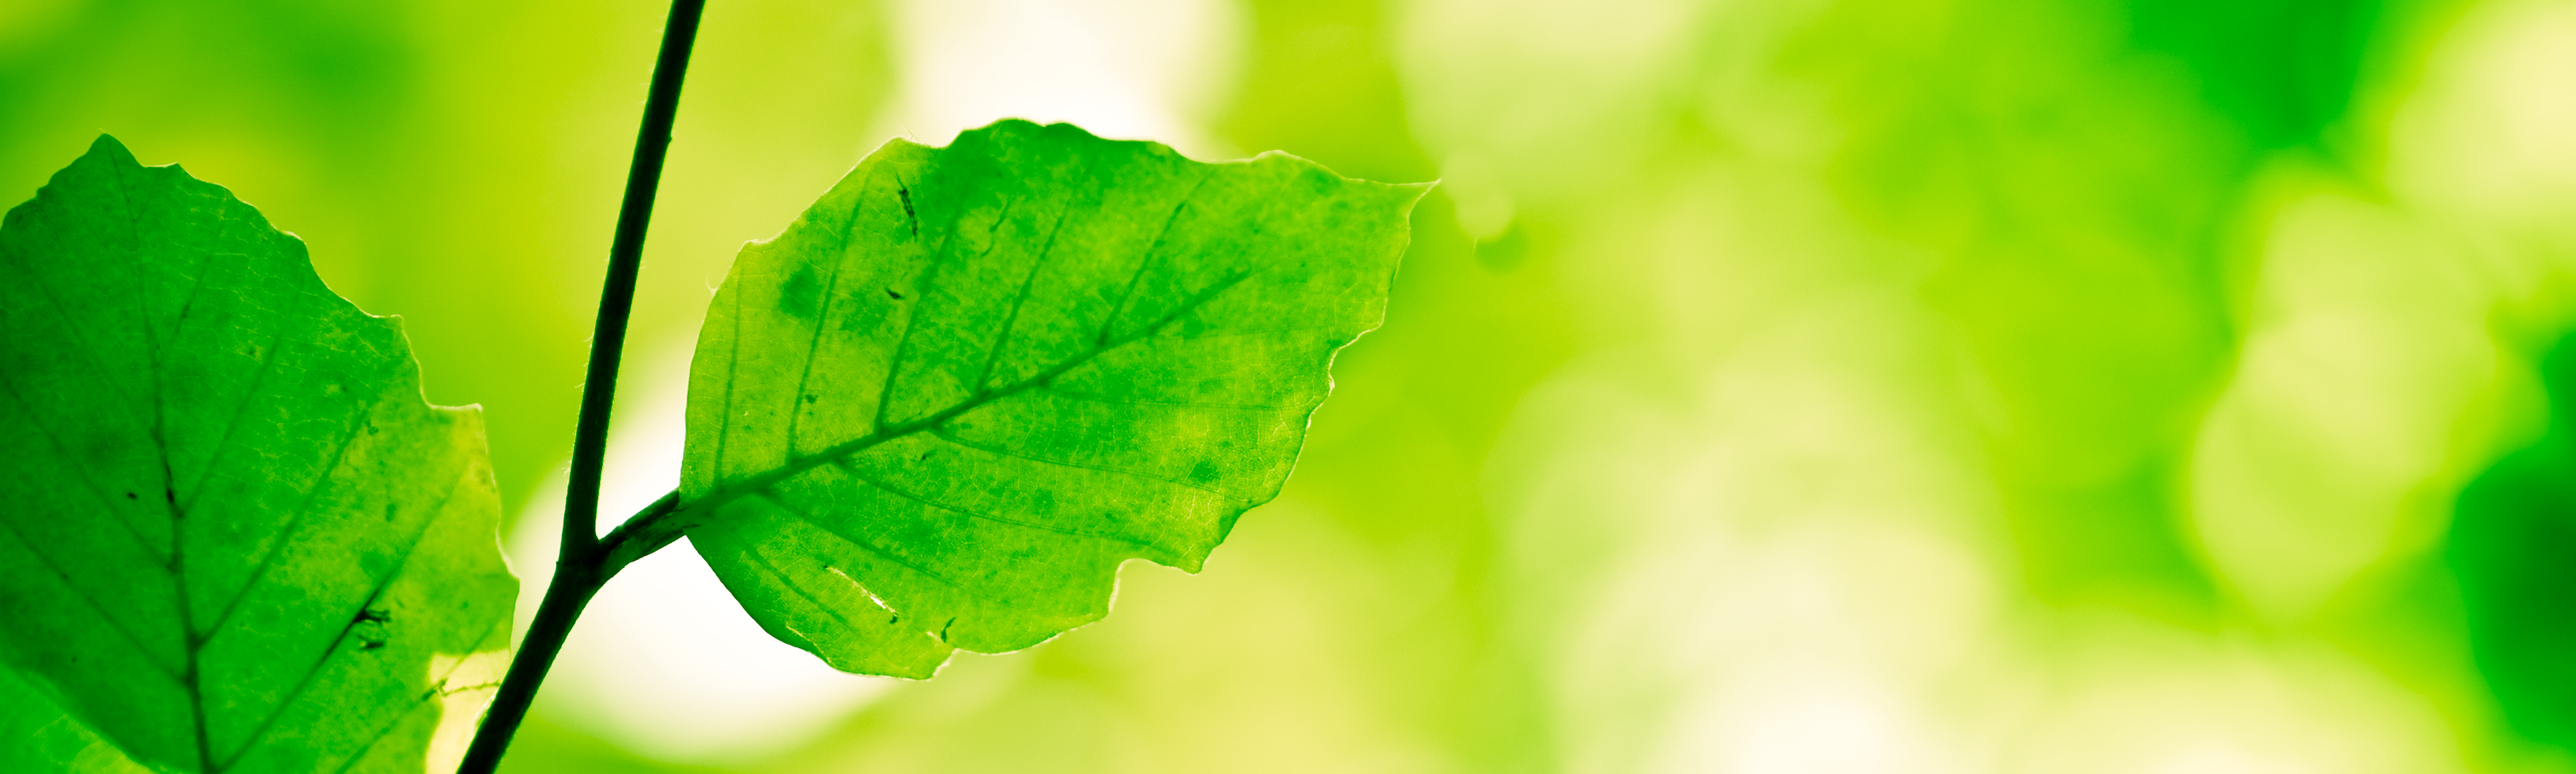 Find LEED Green Building Products Easily